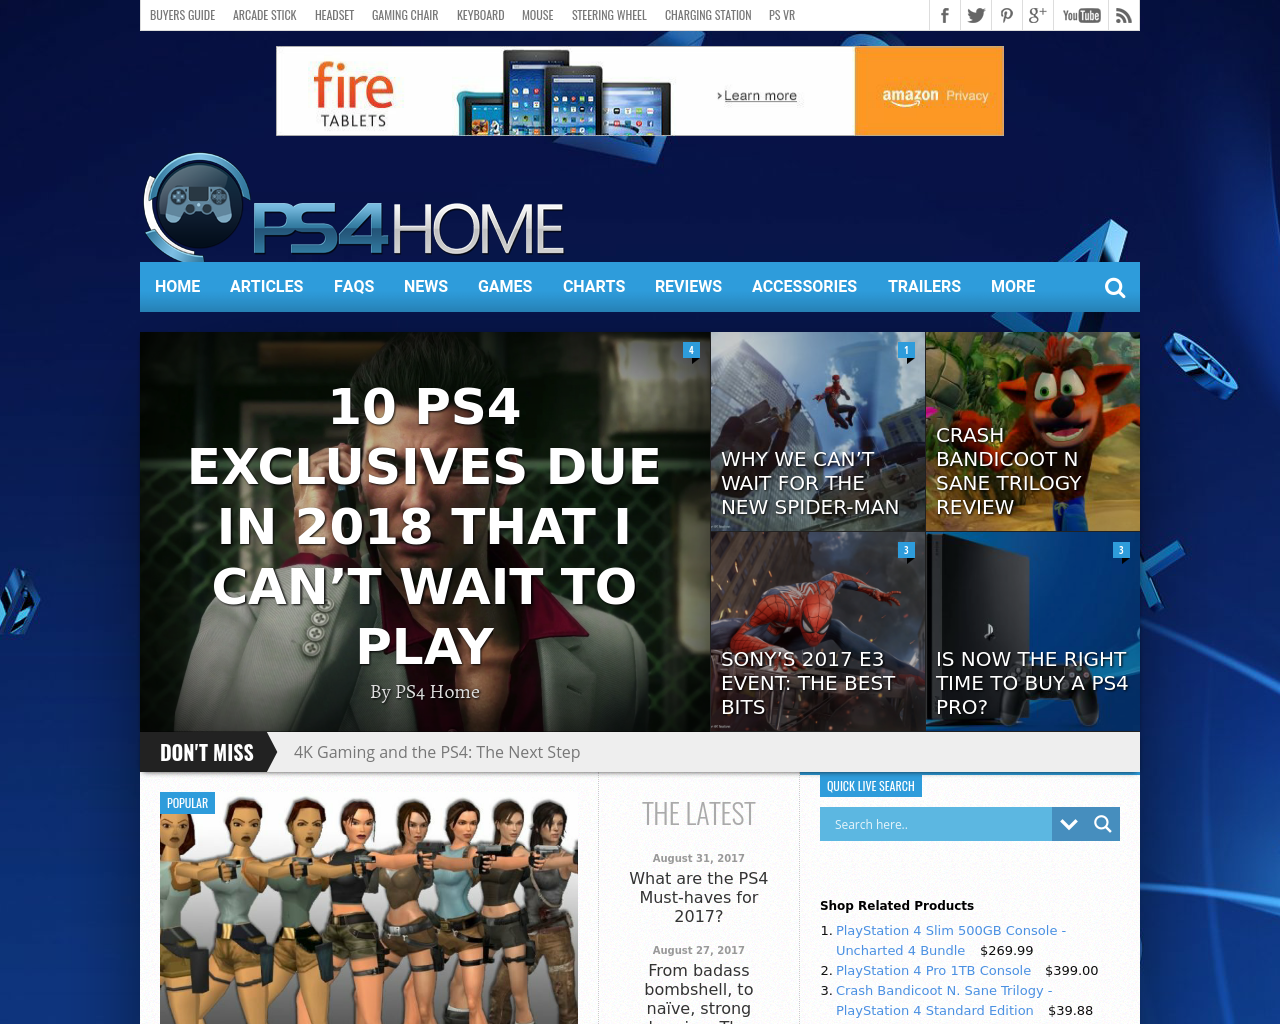 PS4-Home-Advertising-Reviews-Pricing